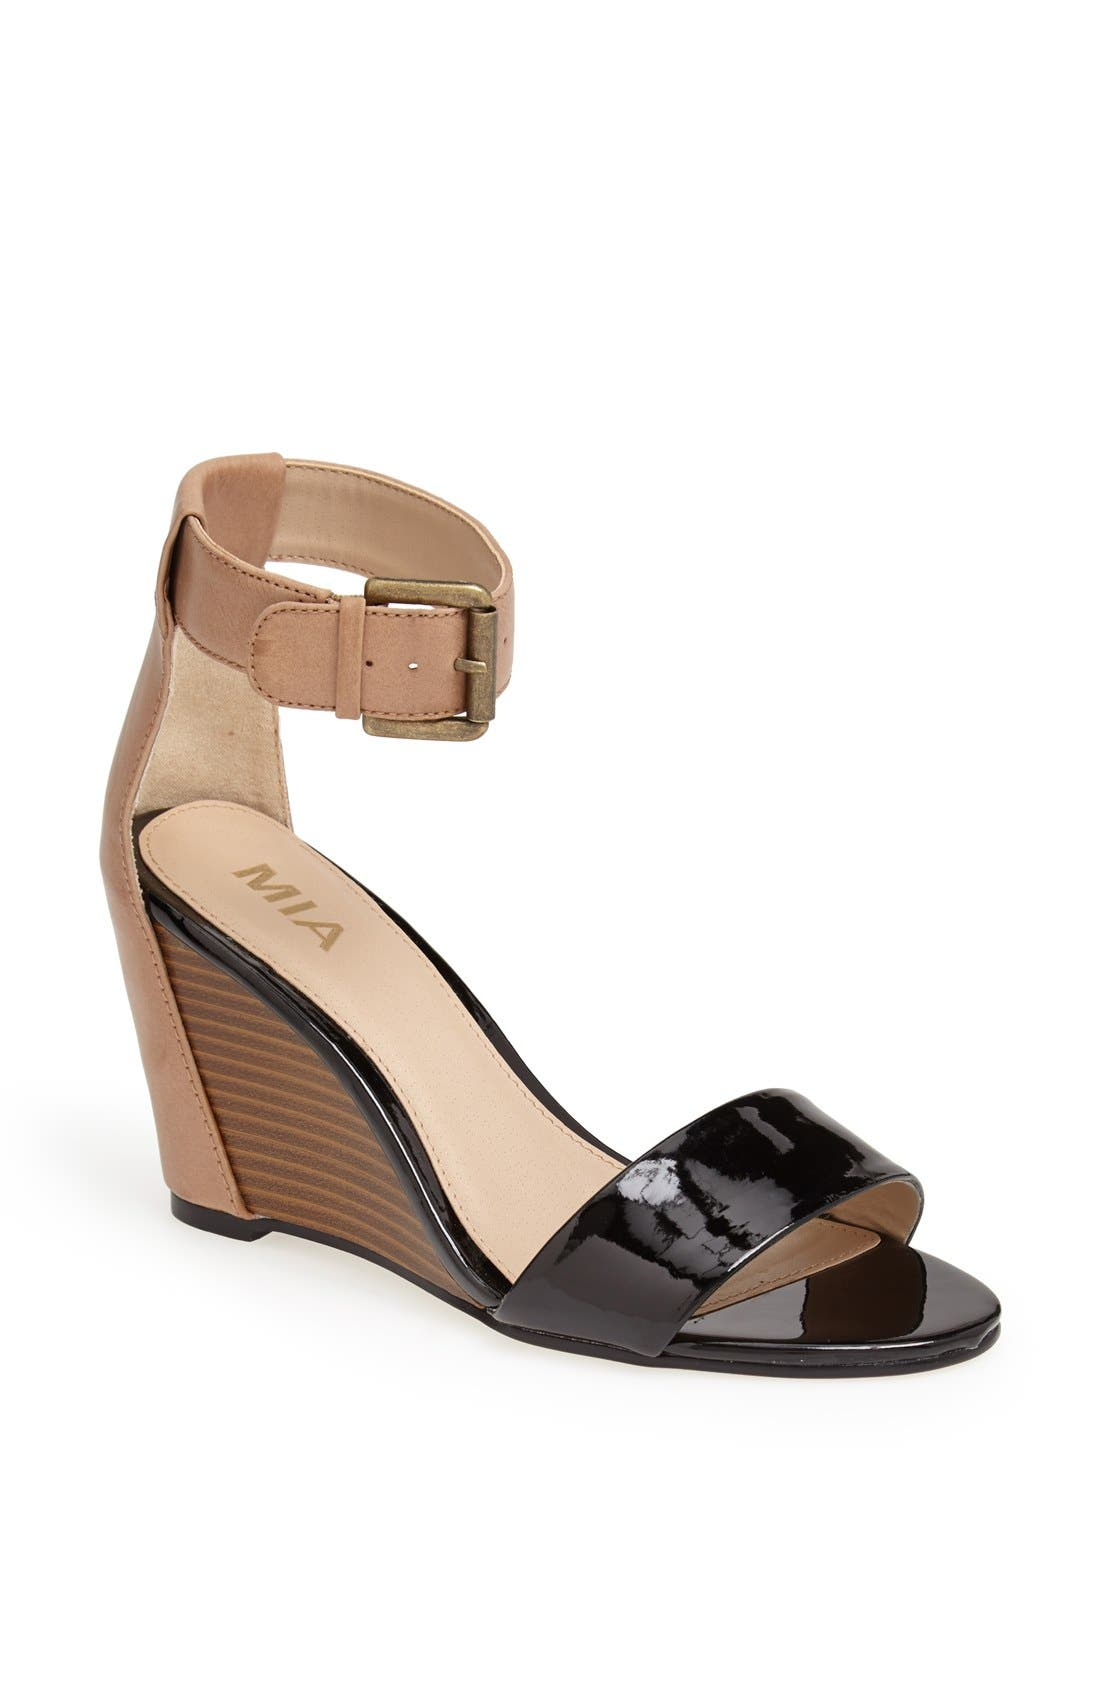 'Fiona' Colorblock Wedge Sandal,                             Main thumbnail 1, color,                             001